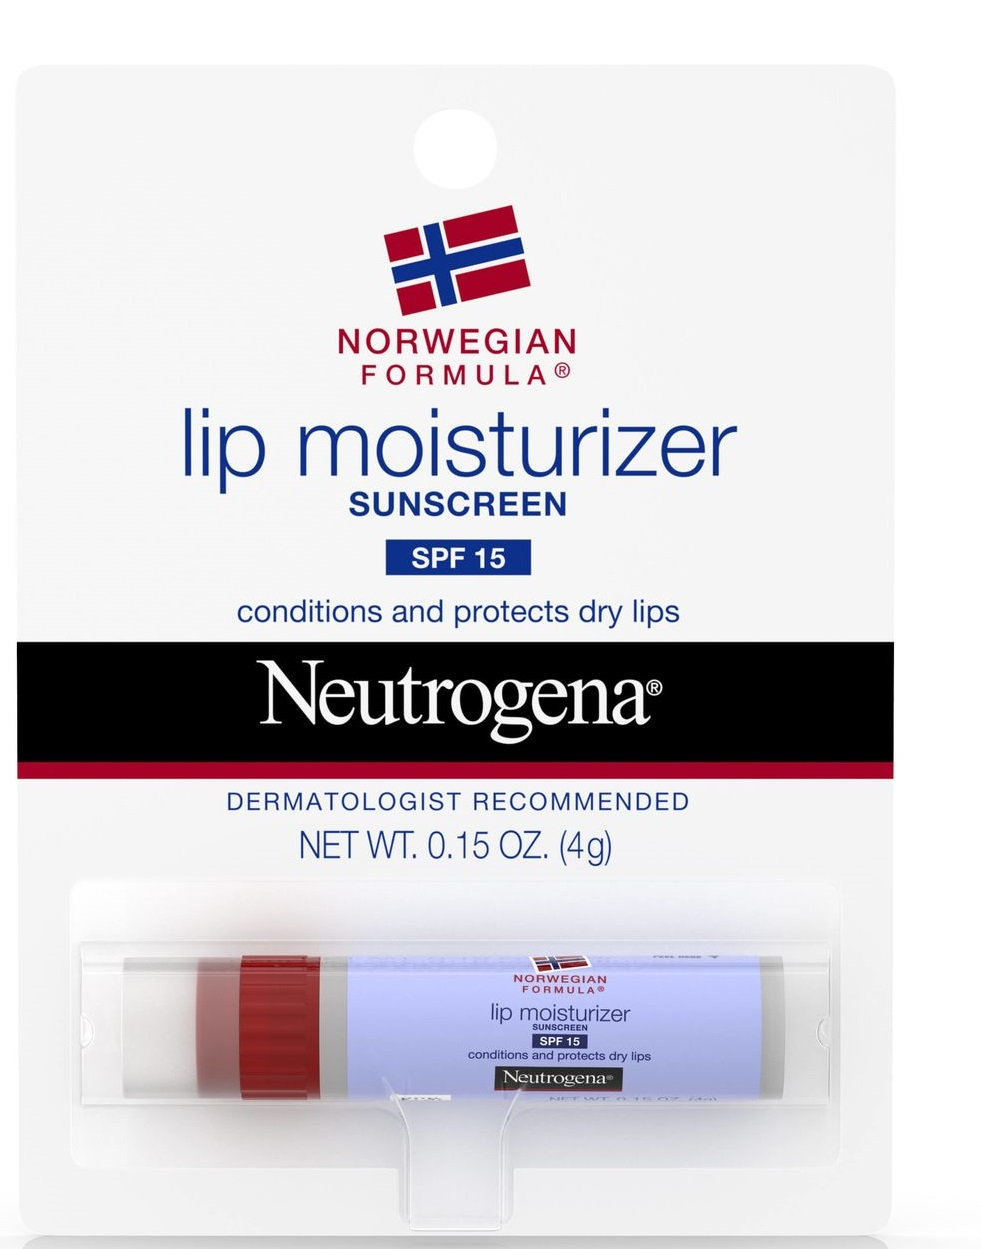 Neutrogena® Norwegian Formula® Lip Moisturizer with Sunscreen SPF 15